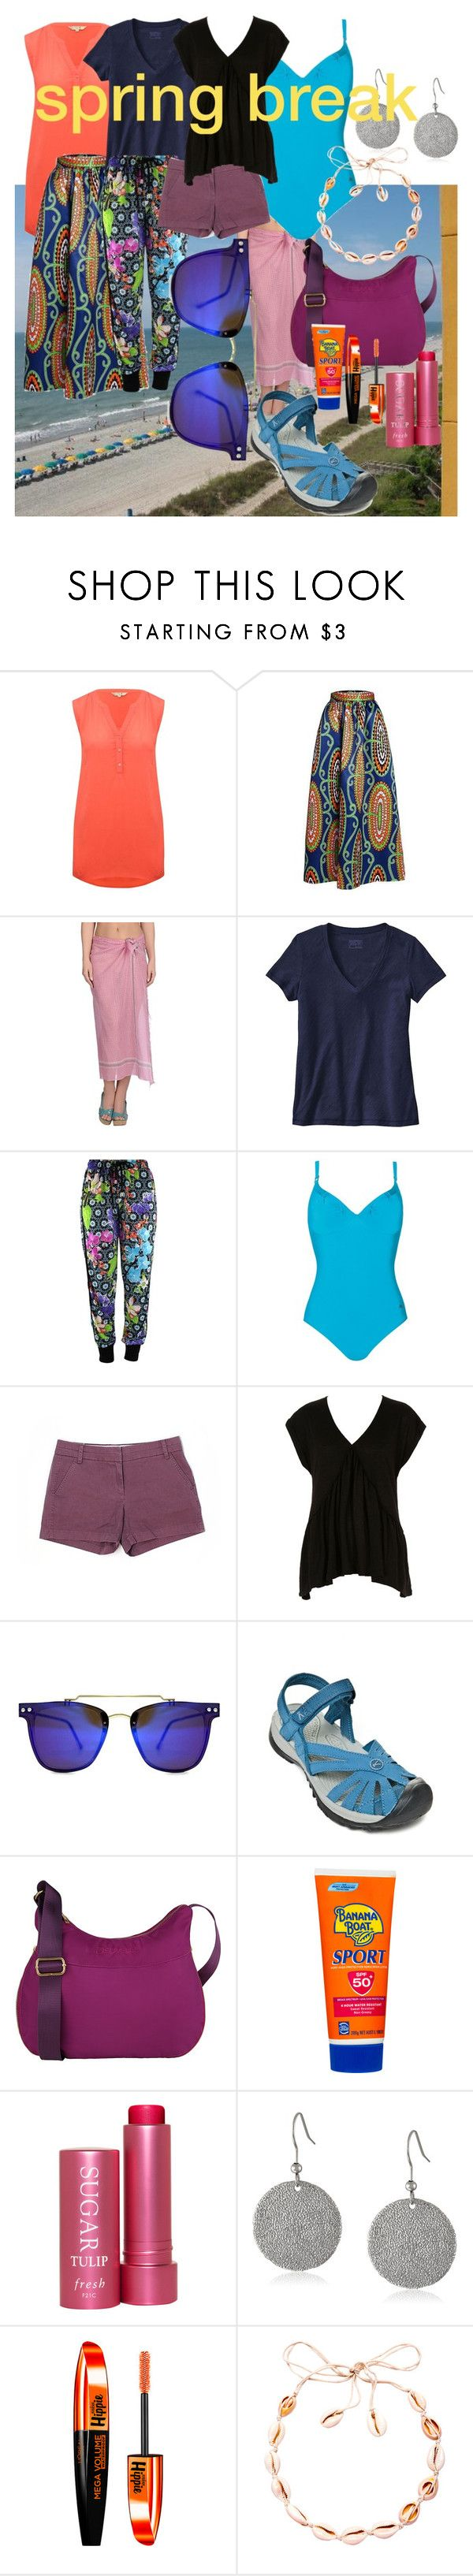 """""""Untitled #844"""" by moestesoh ❤ liked on Polyvore featuring M&Co, Antik Batik, Patagonia, Naturana, J.Crew, River Island, Spitfire, Keen Footwear, Suvelle and Banana Boat"""